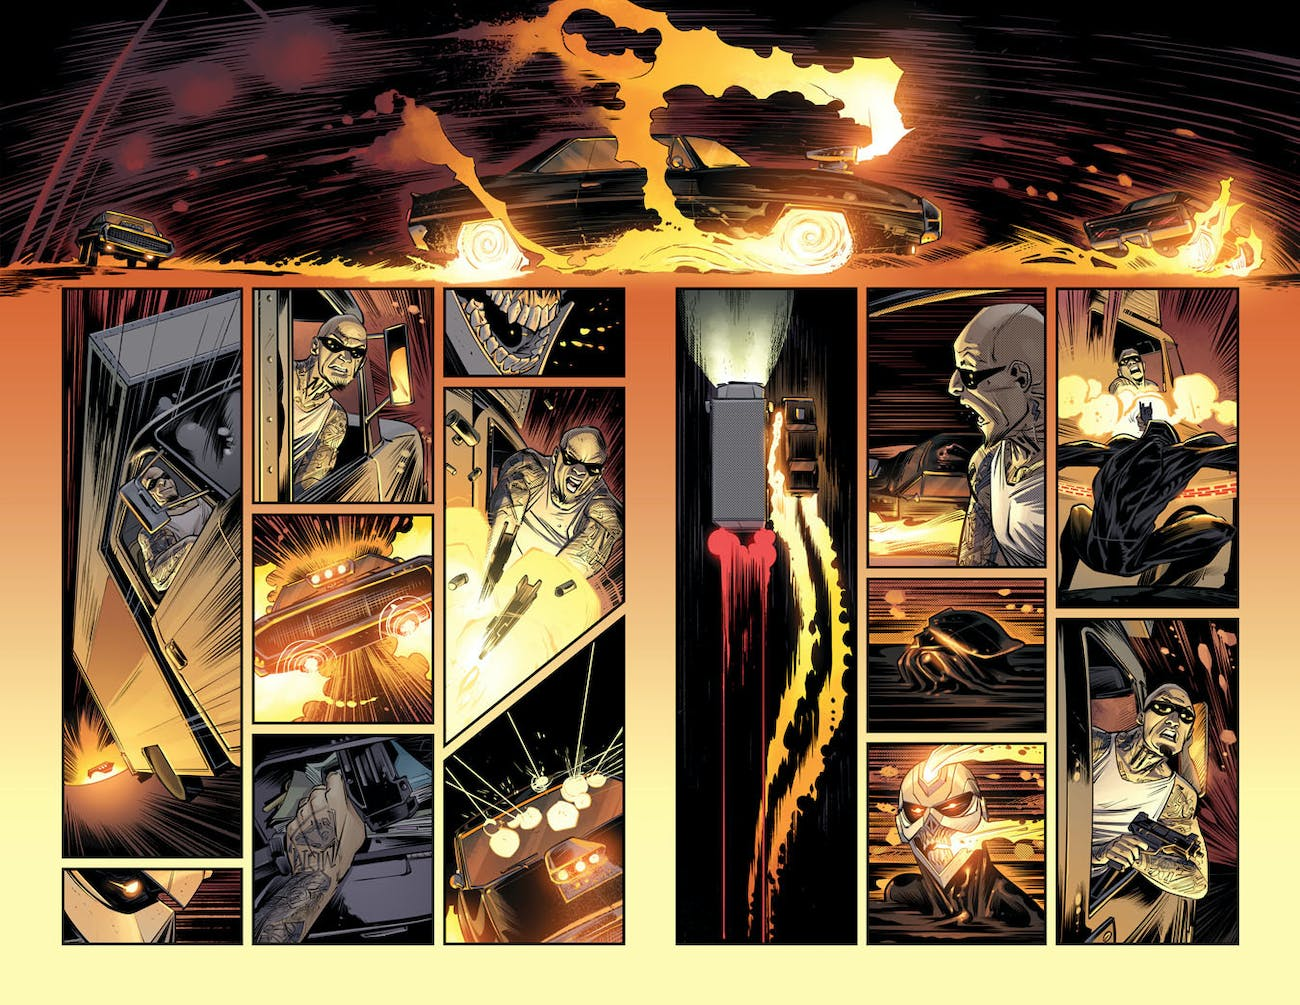 Marvel All New Ghost Rider #1